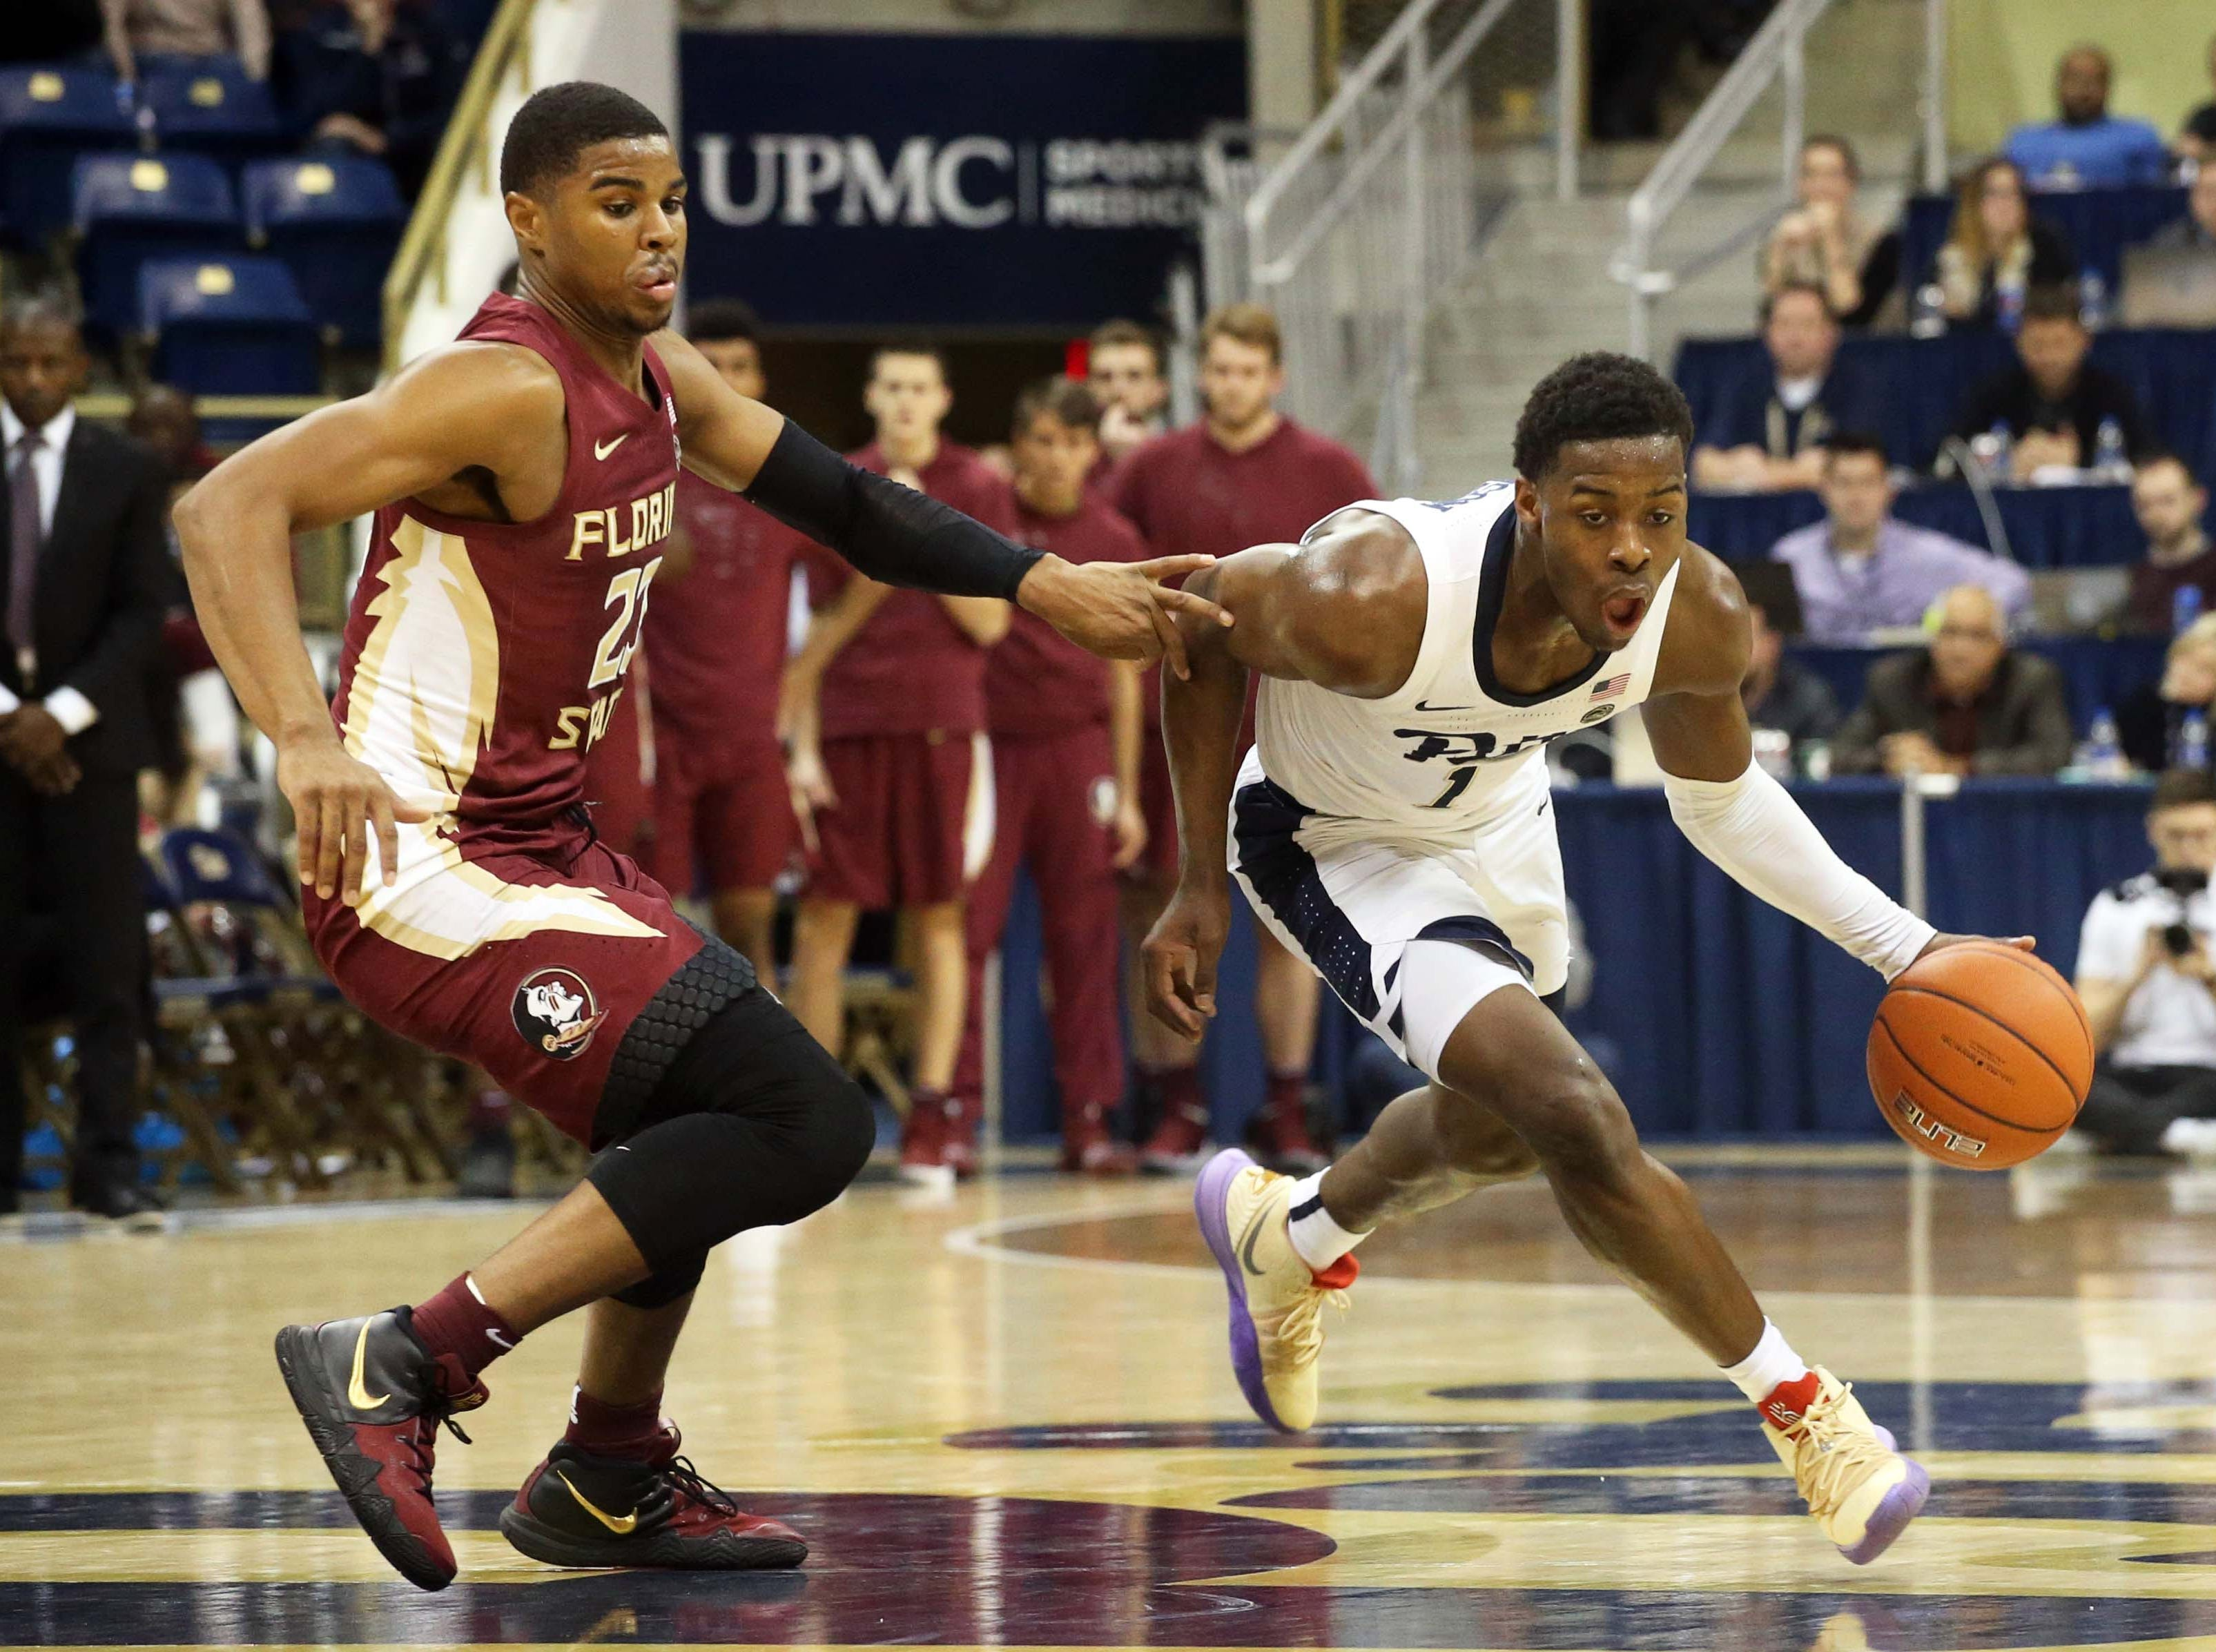 Jan 14, 2019; Pittsburgh, PA, USA; Pittsburgh Panthers guard Xavier Johnson (1) dribbles the ball around Florida State Seminoles guard M.J. Walker (23) during the second half at the Petersen Events Center. Pittsburgh won 75-62. Mandatory Credit: Charles LeClaire-USA TODAY Sports